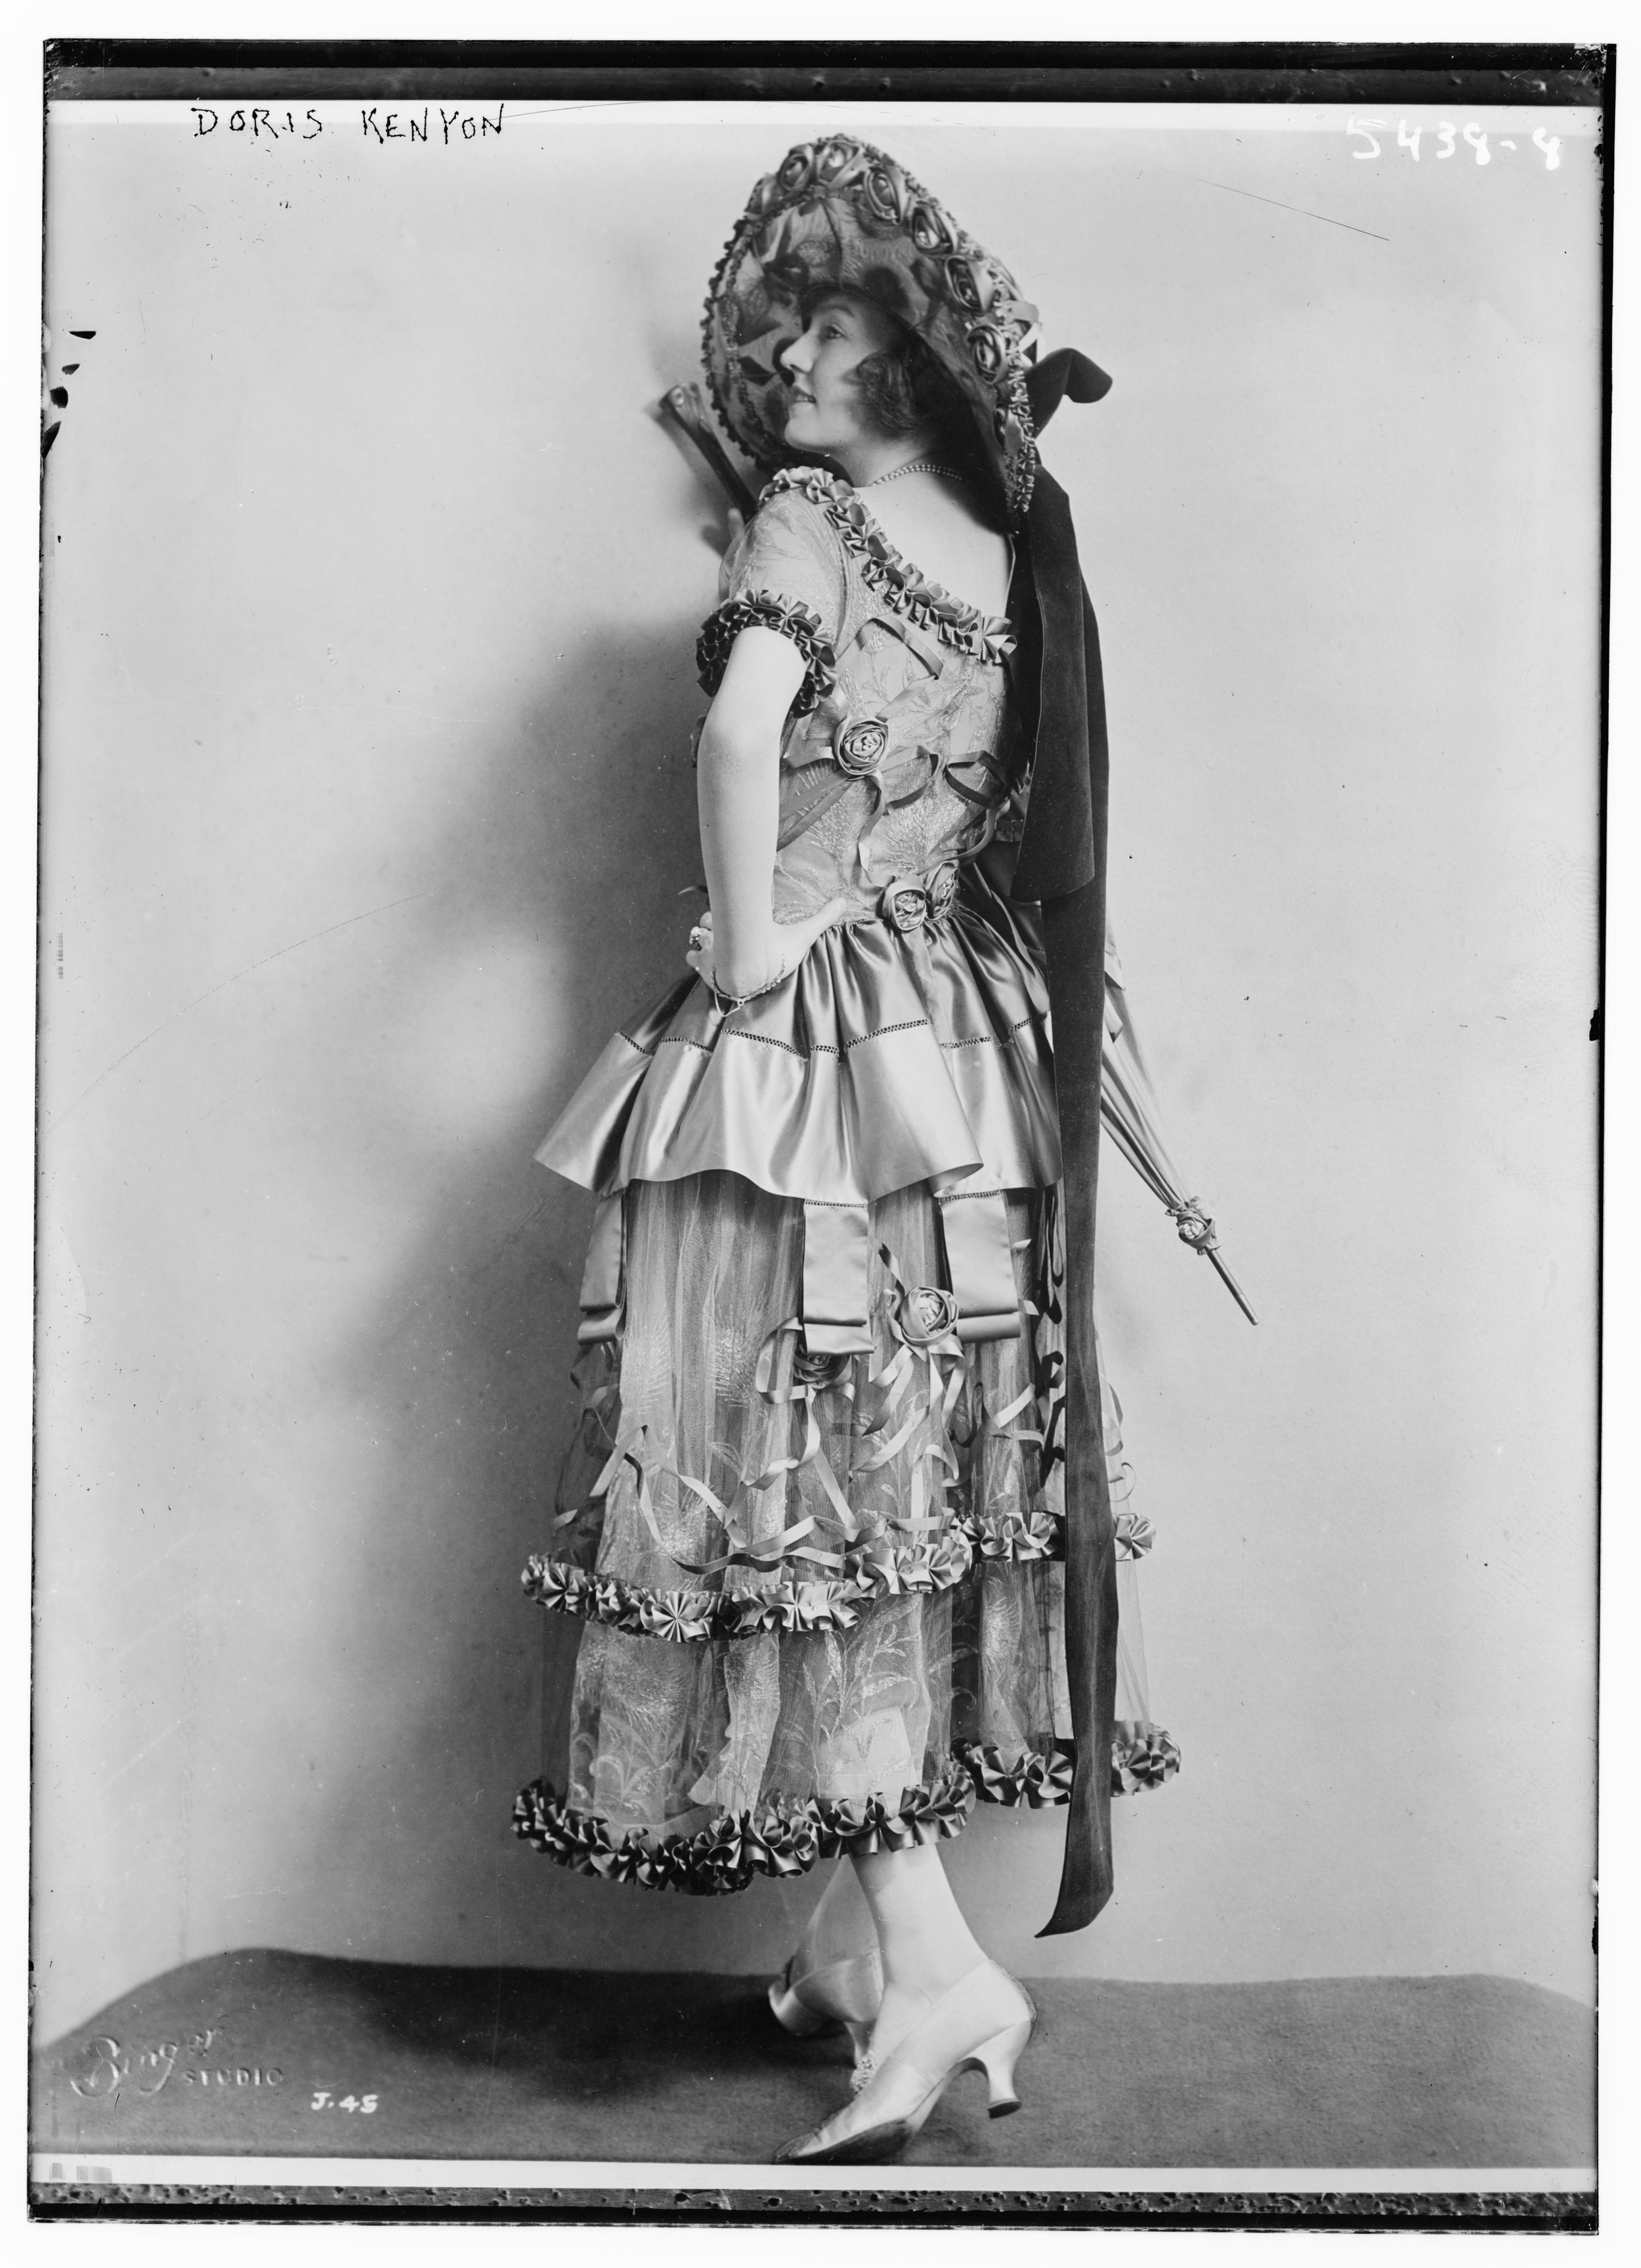 Actress Doris Kenyon, ca. 1915 (The George Grantham Bain Collection - Library of Congress archive)